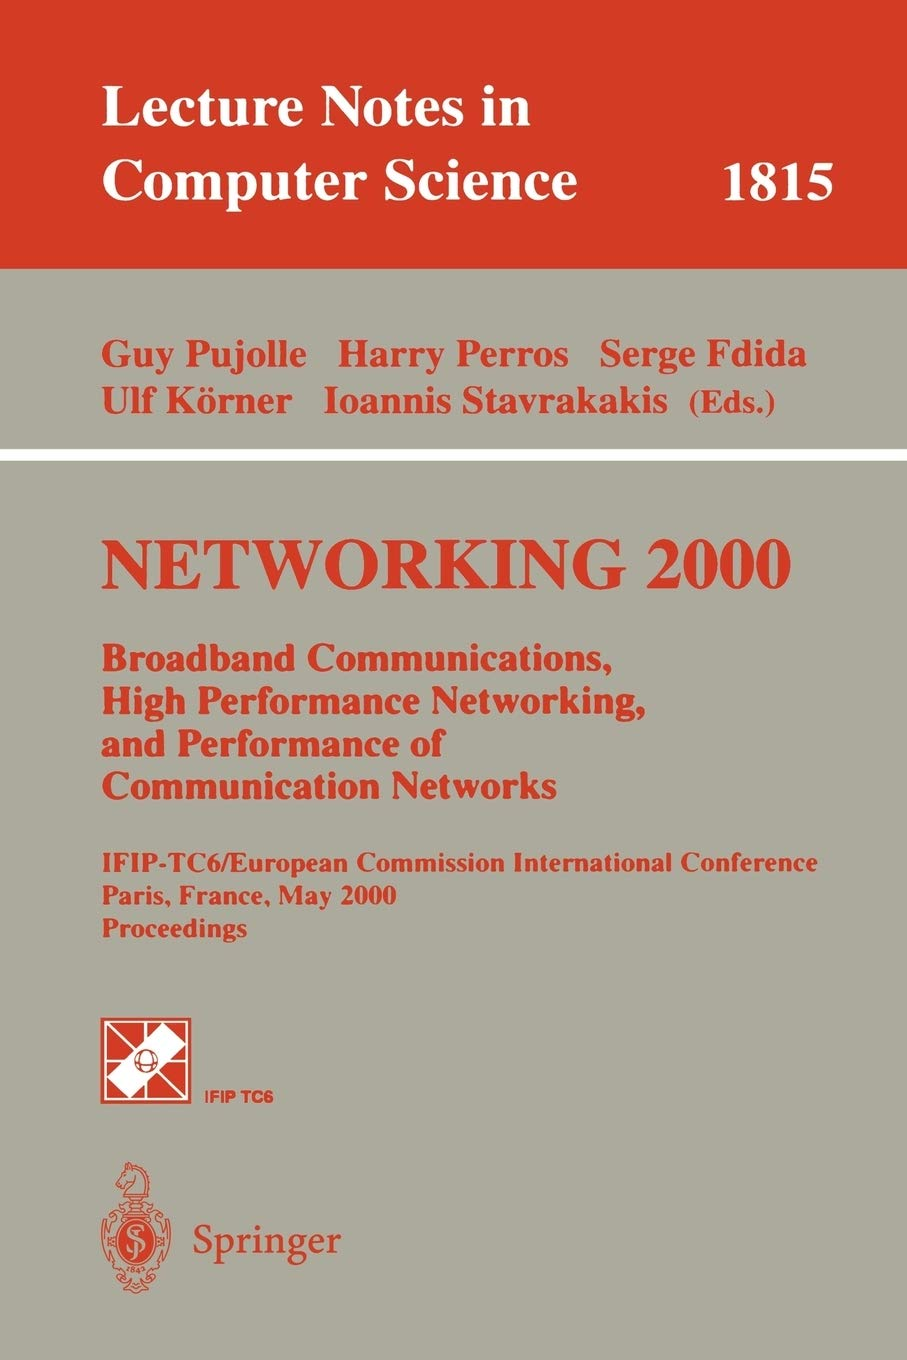 NETWORKING 2000. Broadband Communications, High Performance Networking, and Performance of Communication Networks: IFIP-TC6/European Commission … (Lecture Notes in Computer Science (1815))